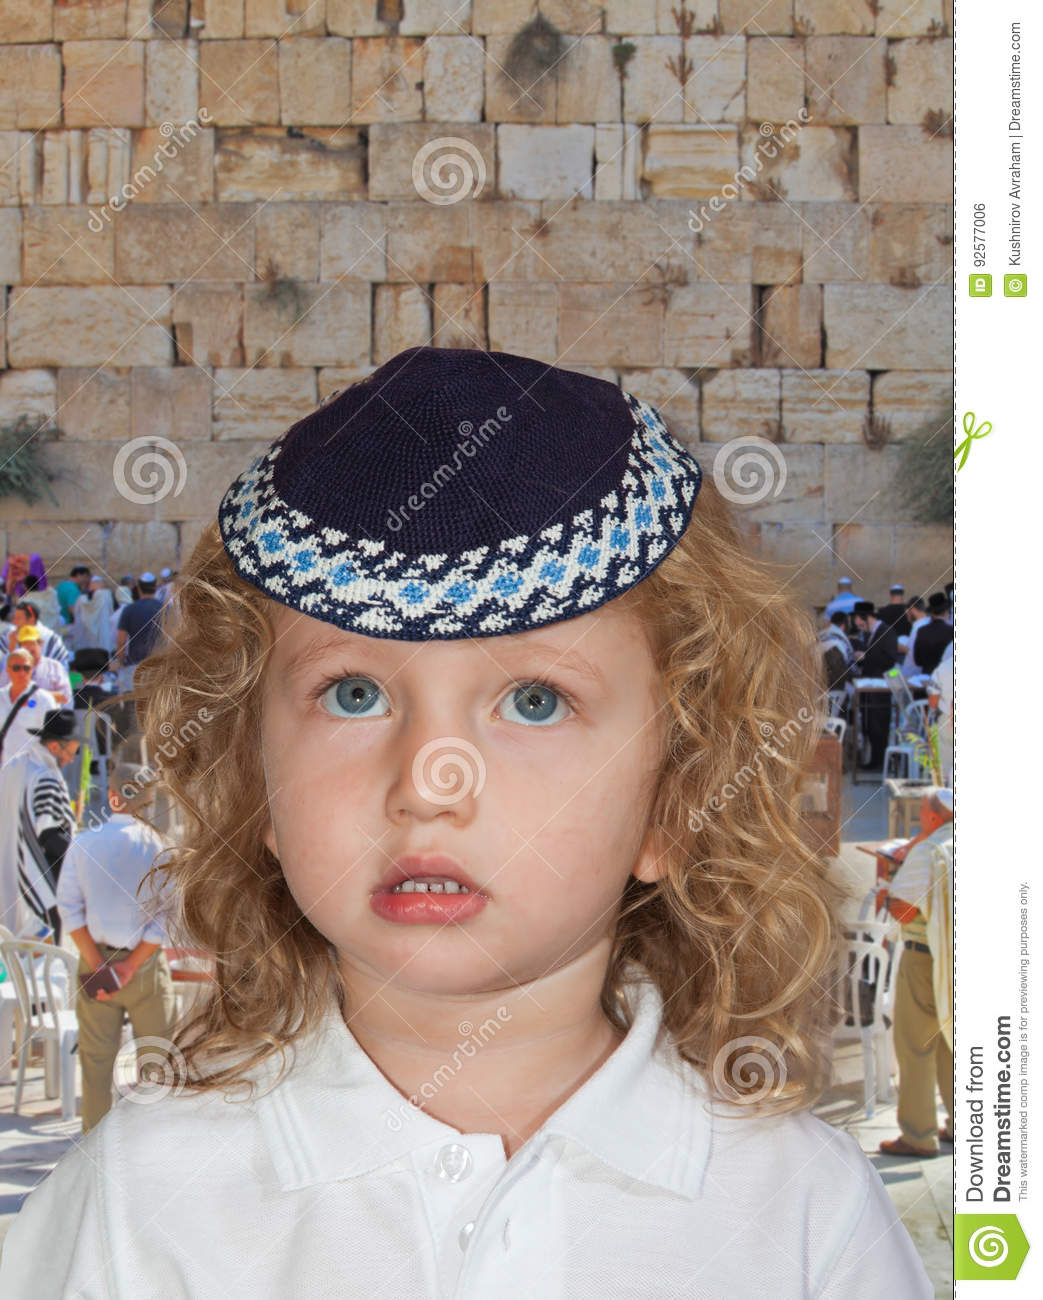 blue eye jewish singles Raisy was a plump woman with bright blue eyes visible through the  computer  that contained her database of single ultra-orthodox jews.